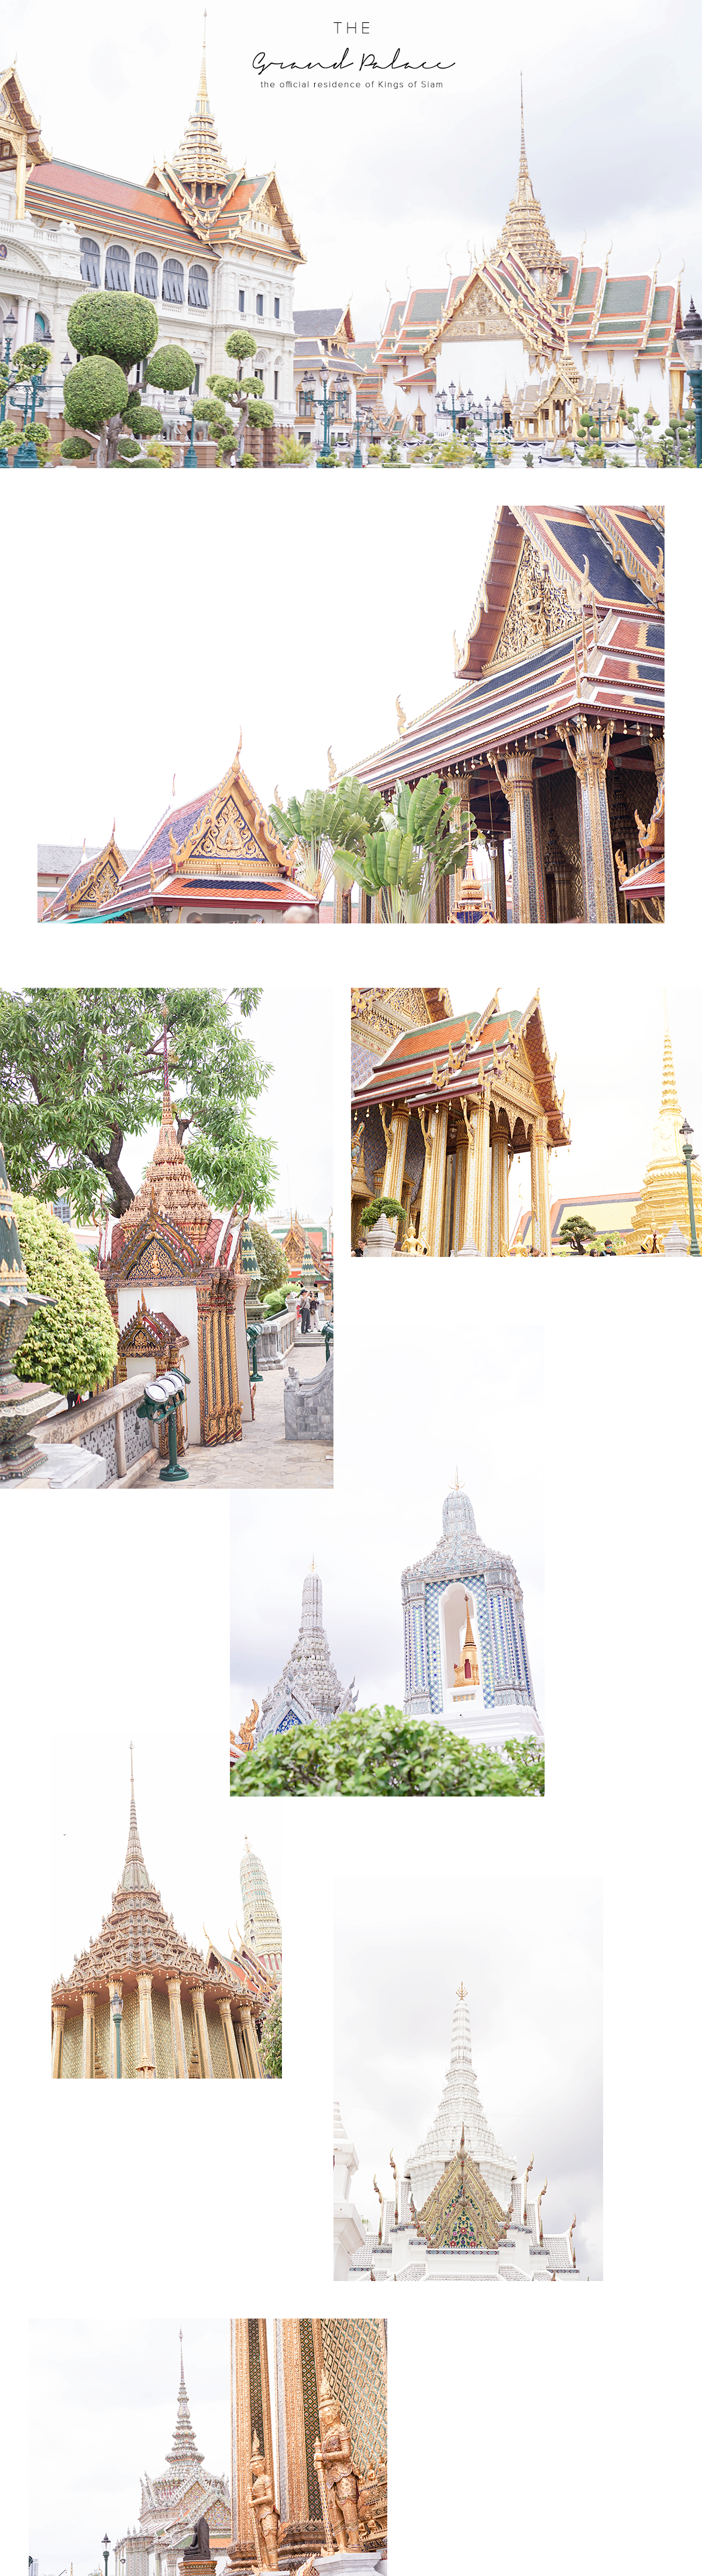 Where to go in Bangkok: THE GRAND PALACE - the official residence of Kings of Siam since 1782.